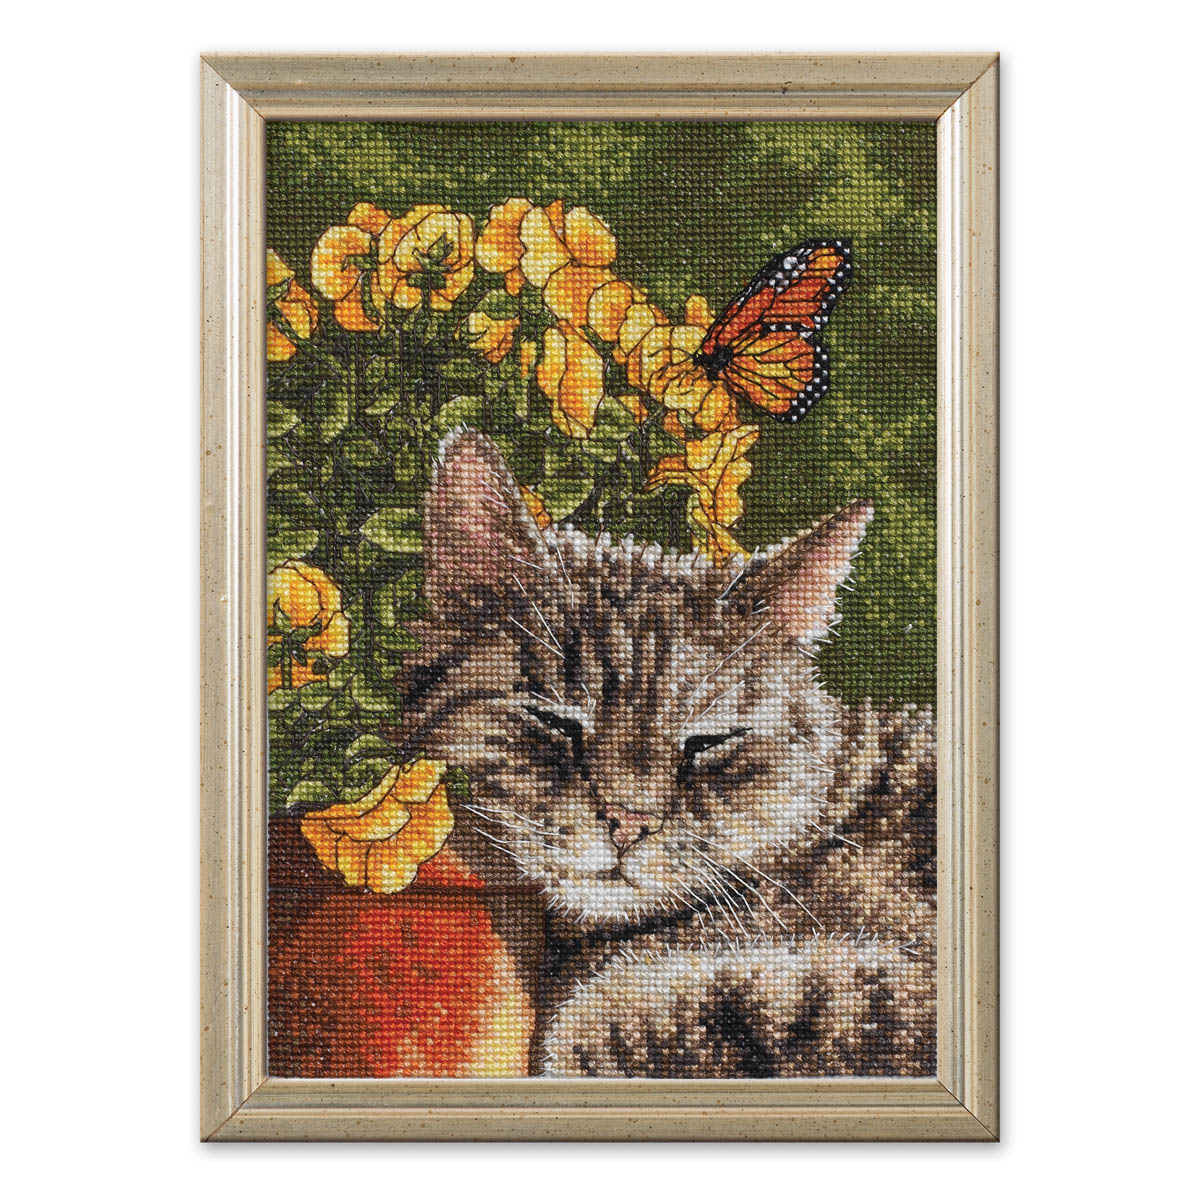 Bucilla ® Counted Cross Stitch - Picture Kits - Mini - Afternoon Nap - WM45700